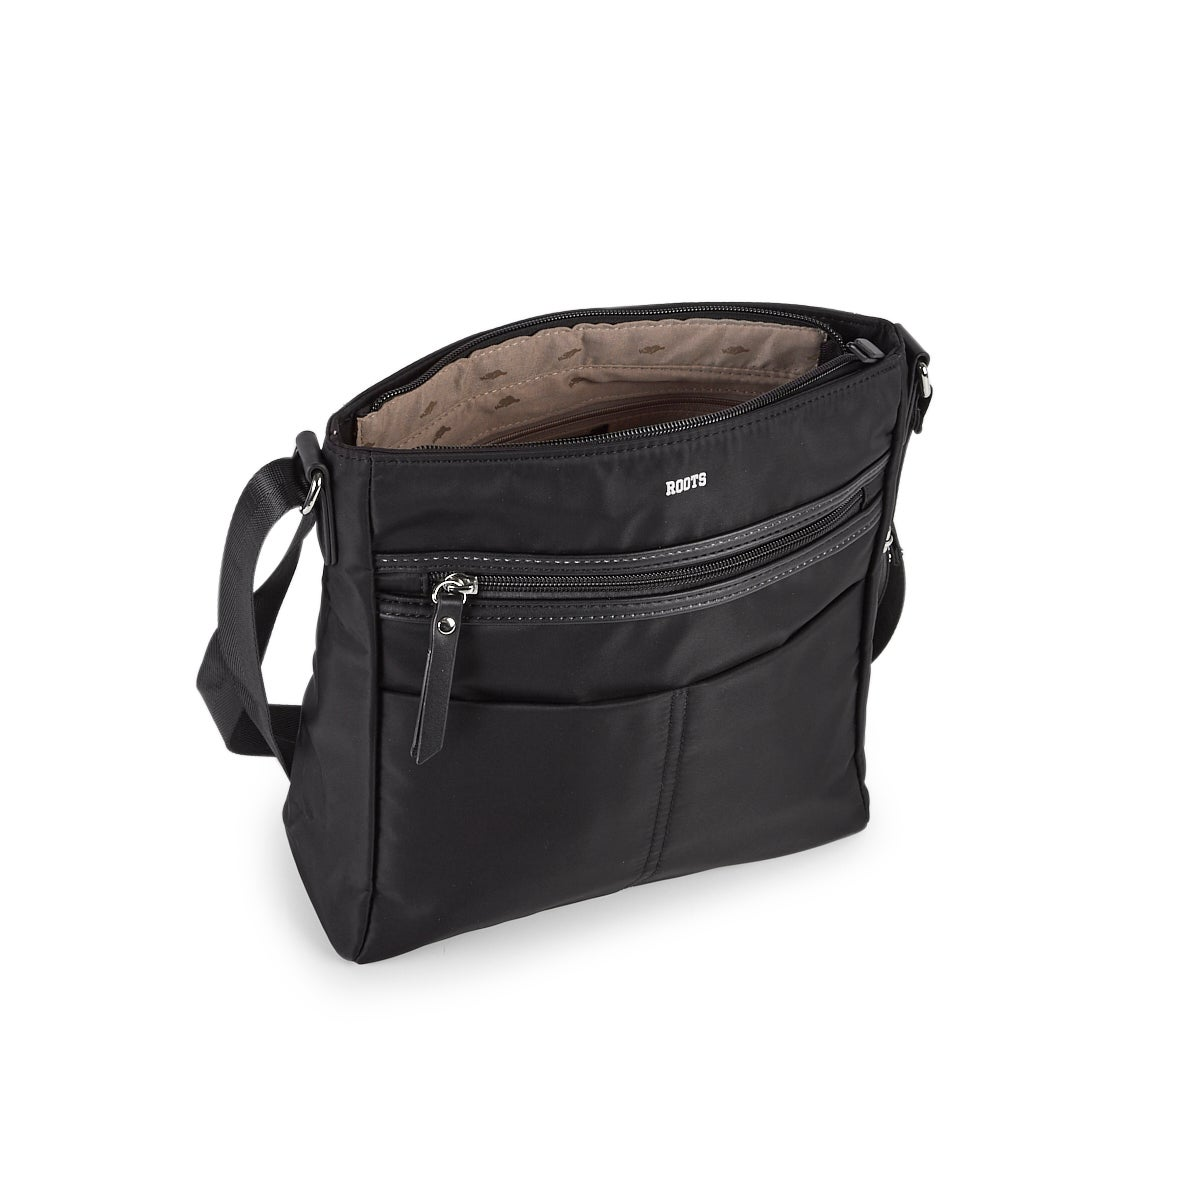 Lds Roots73 blk n/s mlti pckt crossbody